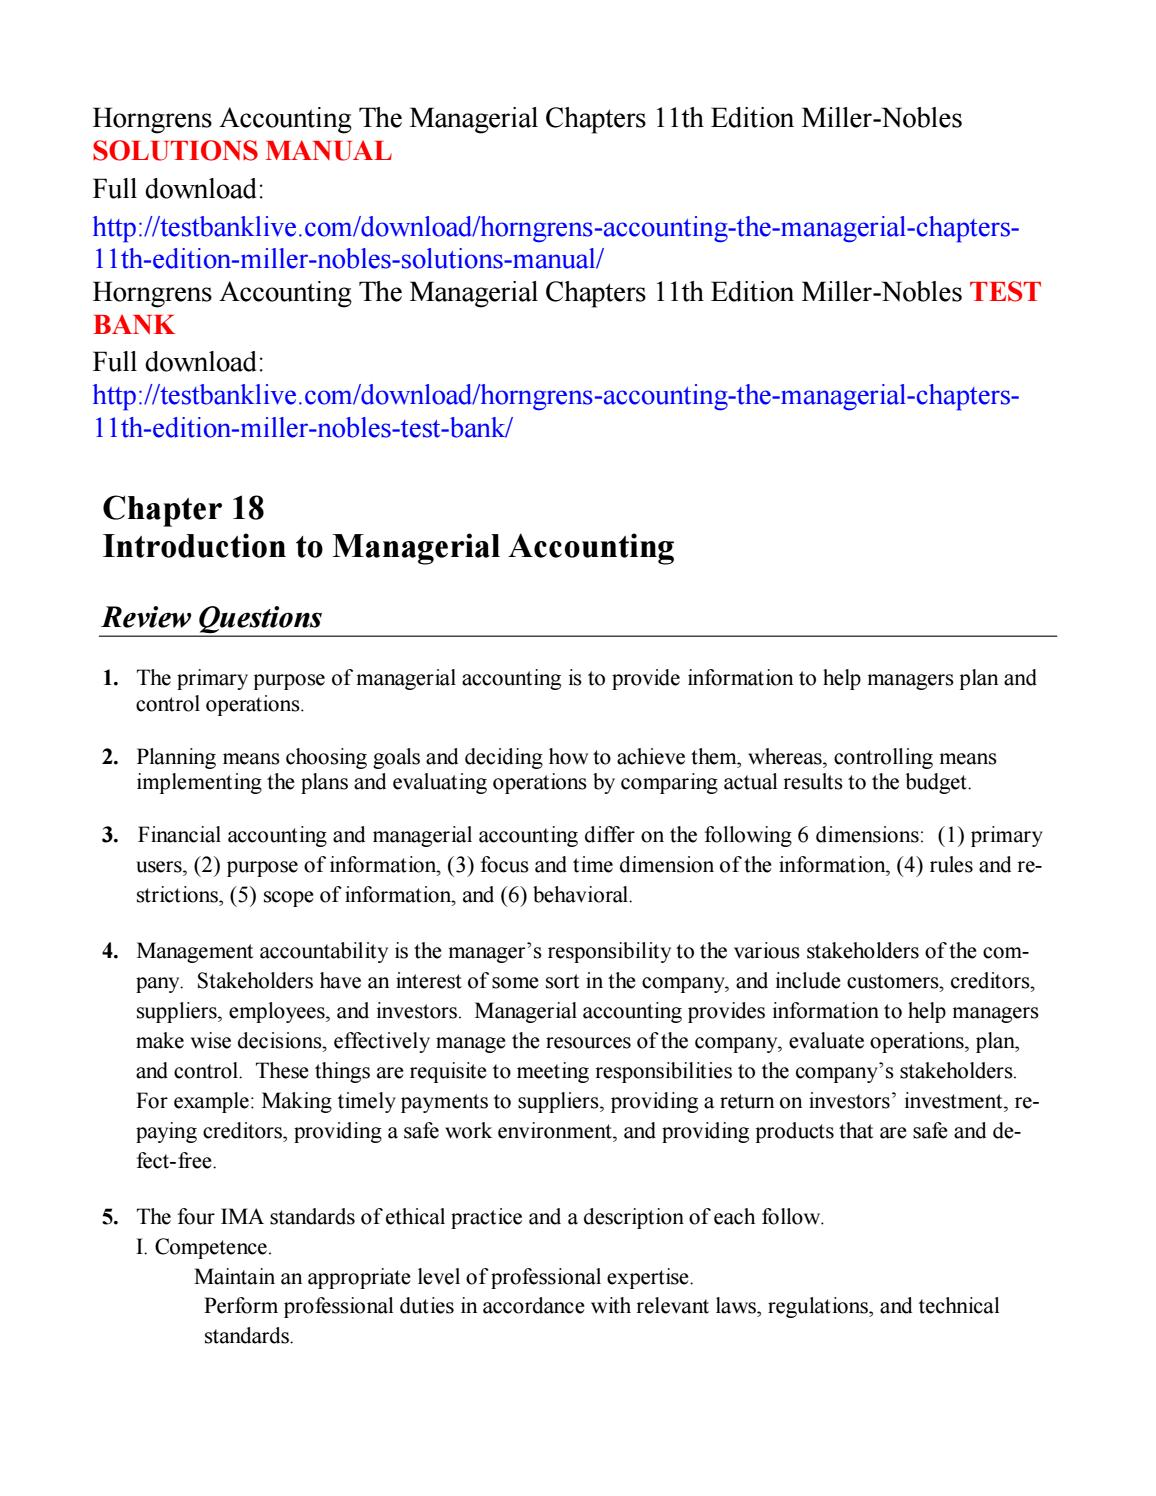 Horngrens accounting the managerial chapters 11th edition miller nobles solutions  manual by issuu1112 - issuu